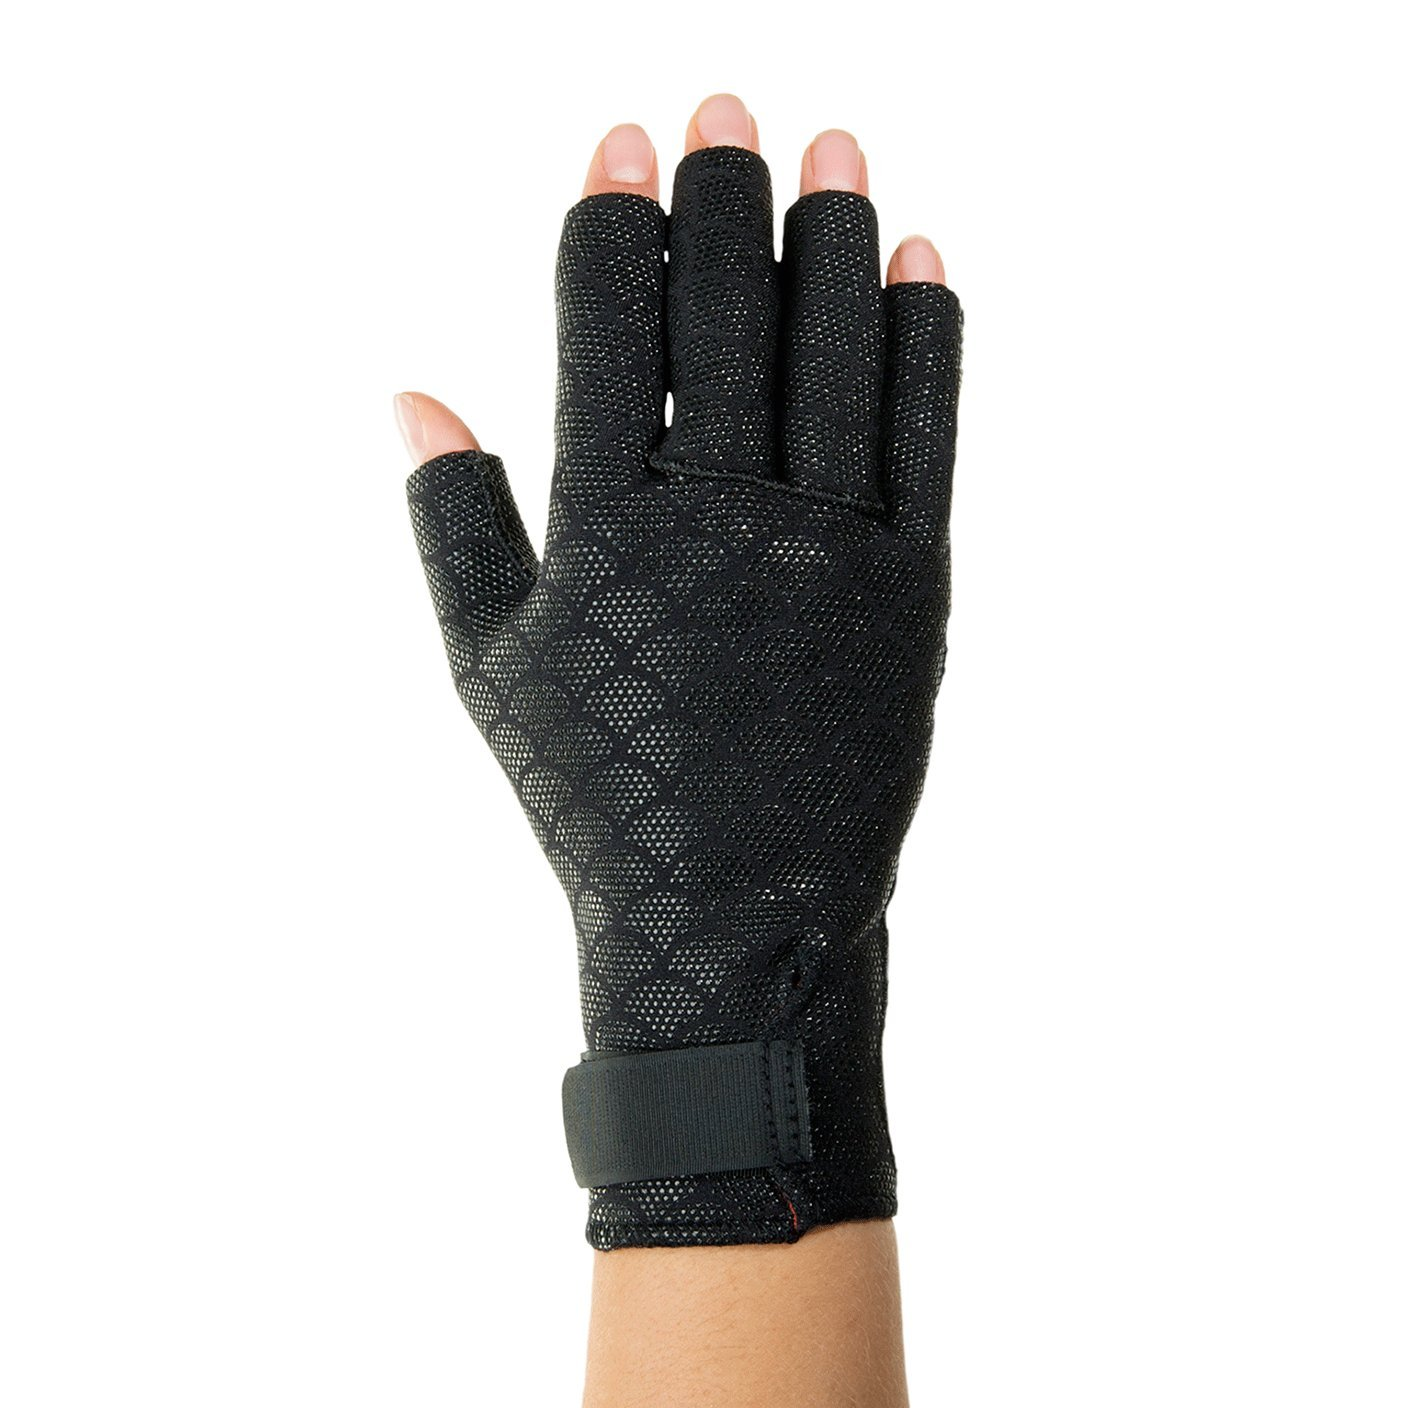 Driving gloves for arthritis - Thermoskin Arthritic Gloves Black One Pair Small Amazon In Sports Fitness Outdoors